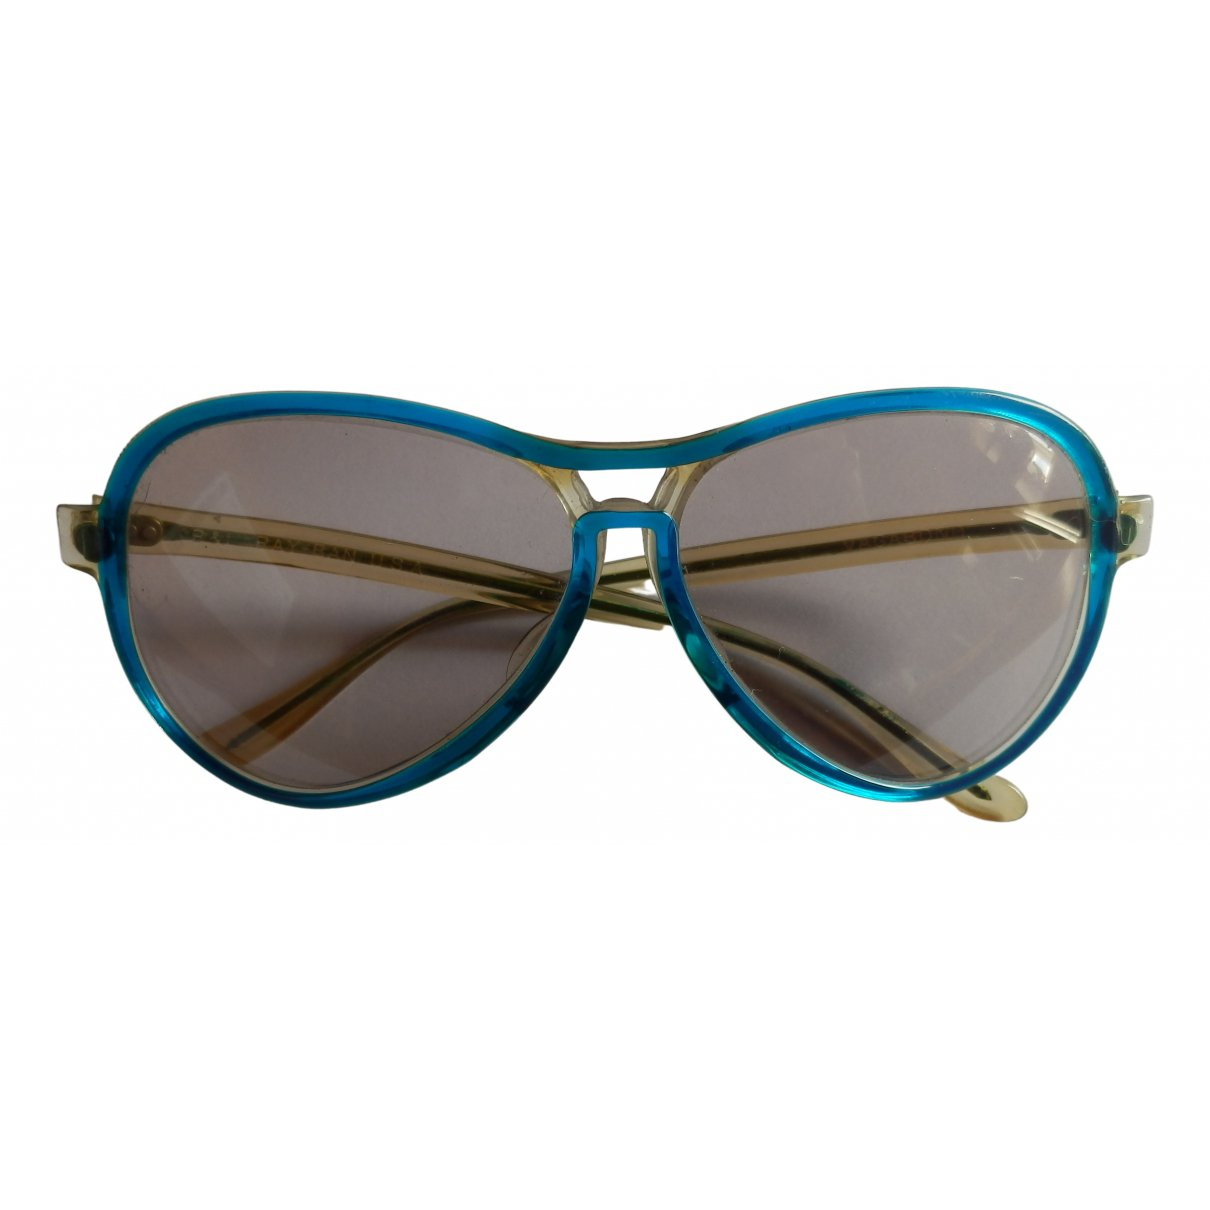 Ray-ban Aviator Blue Sunglasses for Women